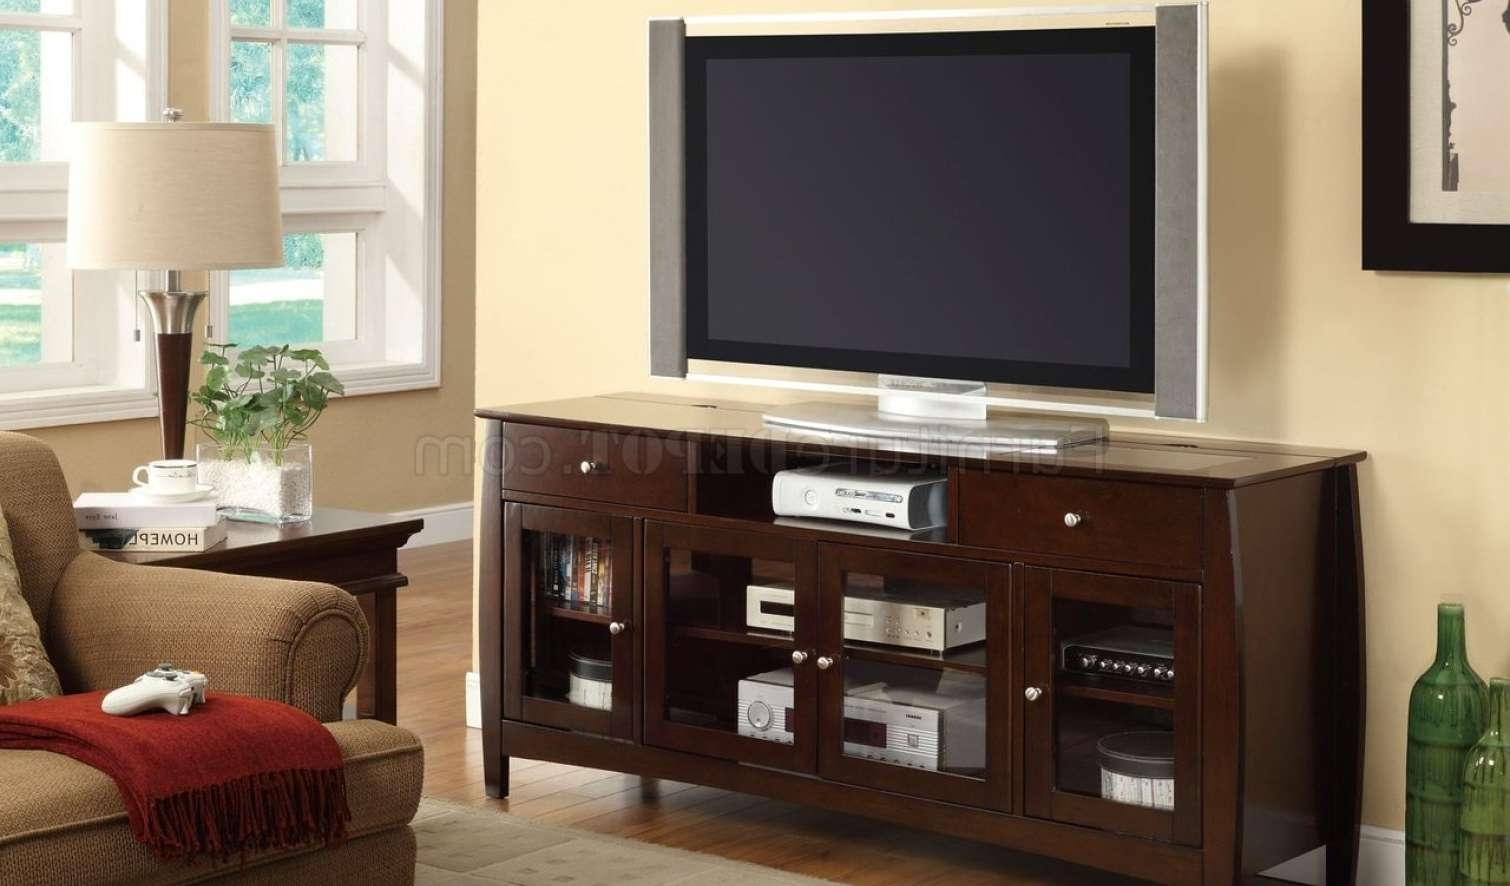 Tv : Tv Stand Images Amazing Stands And Deliver Tv Stands Buy Avf Intended For Stand And Deliver Tv Stands (View 6 of 20)